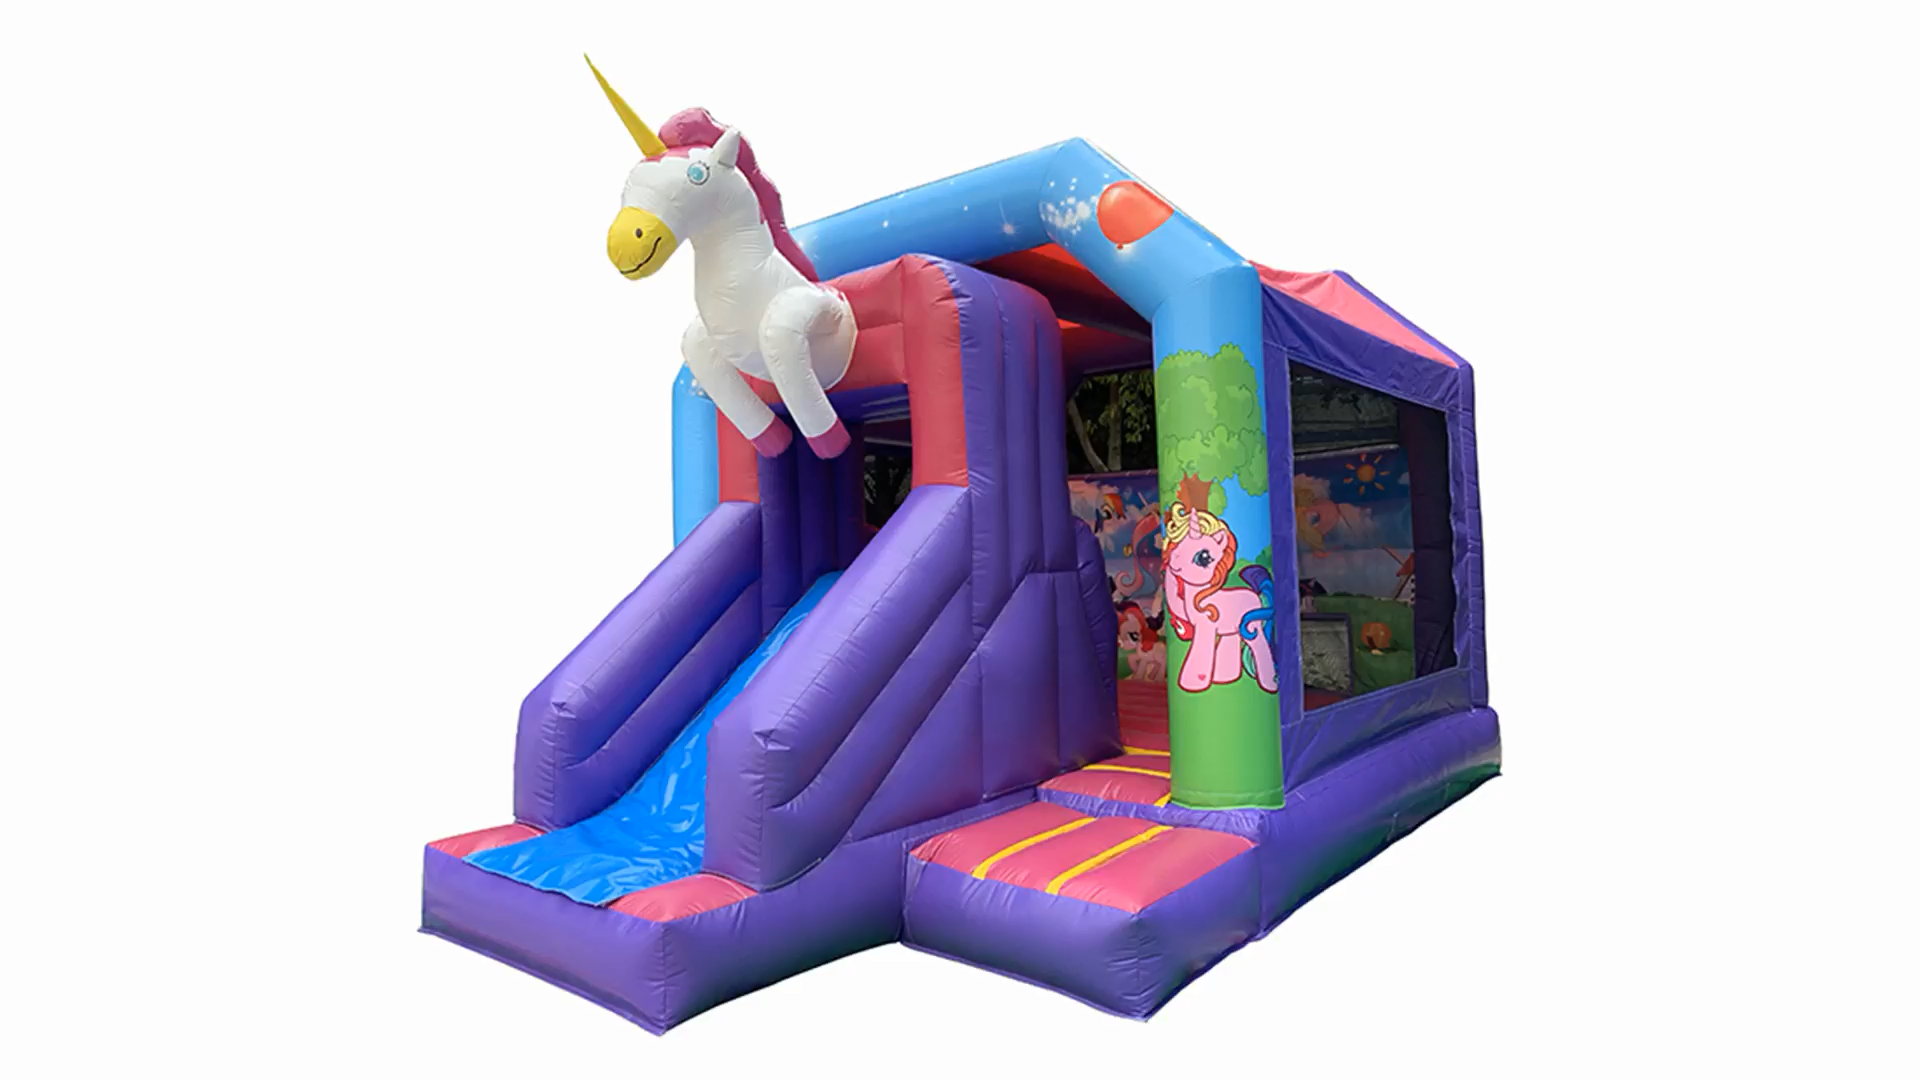 2020 high quality Inflatable Jumping Bounce House kids castle inflatable unicorn bouncer with slide for sale